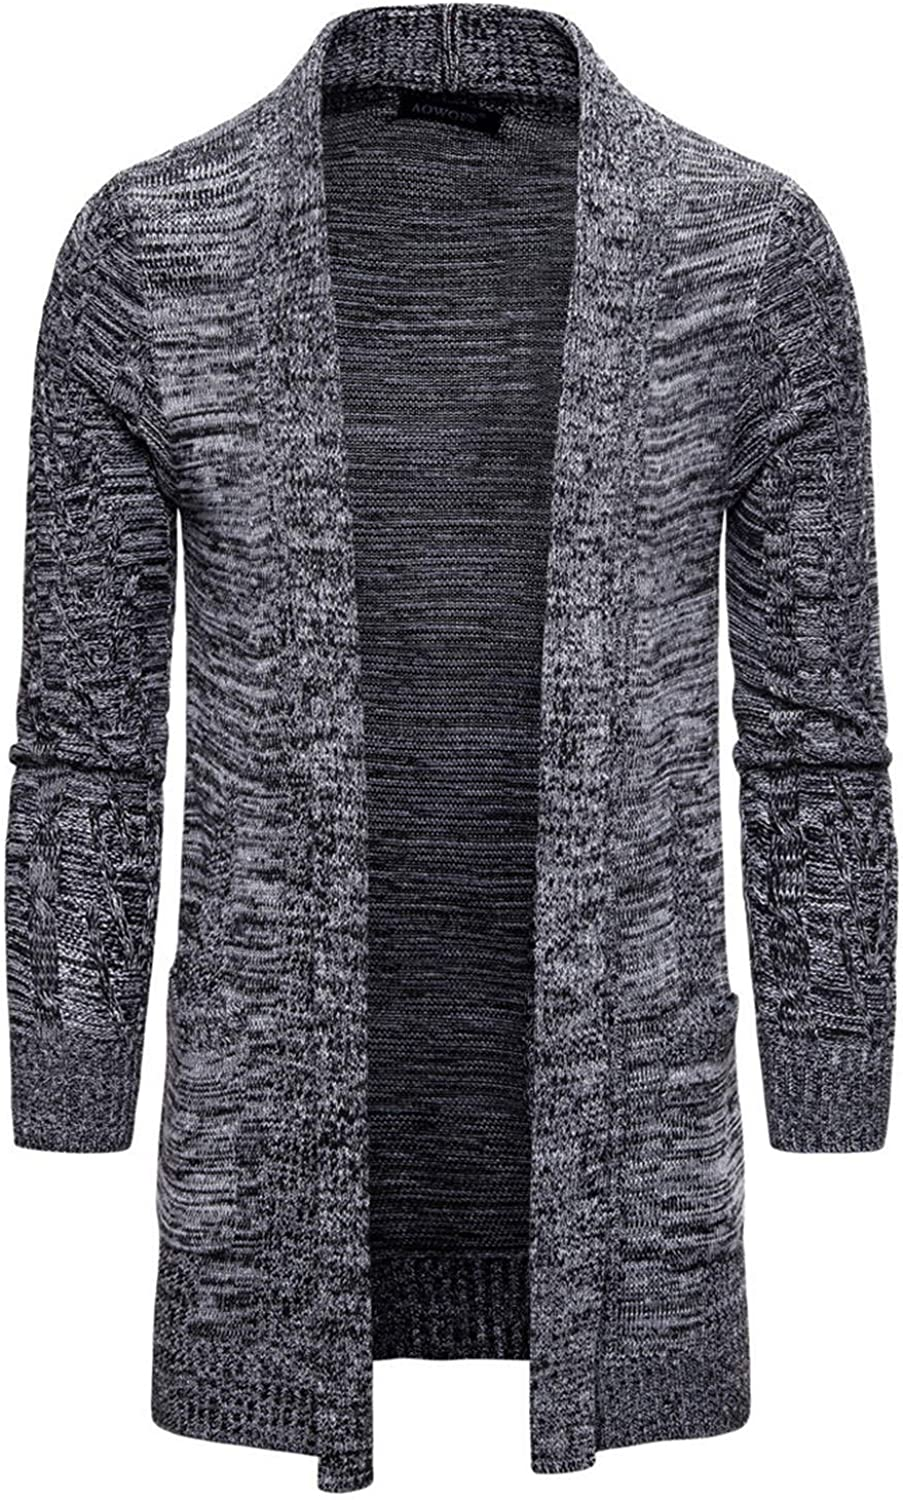 Soluo Mens Cardigan Sweater Long Sleeve Open Front Shawl Collar Fall Winter Chunky Knit Cardigans Overcoat (Gray,Small)